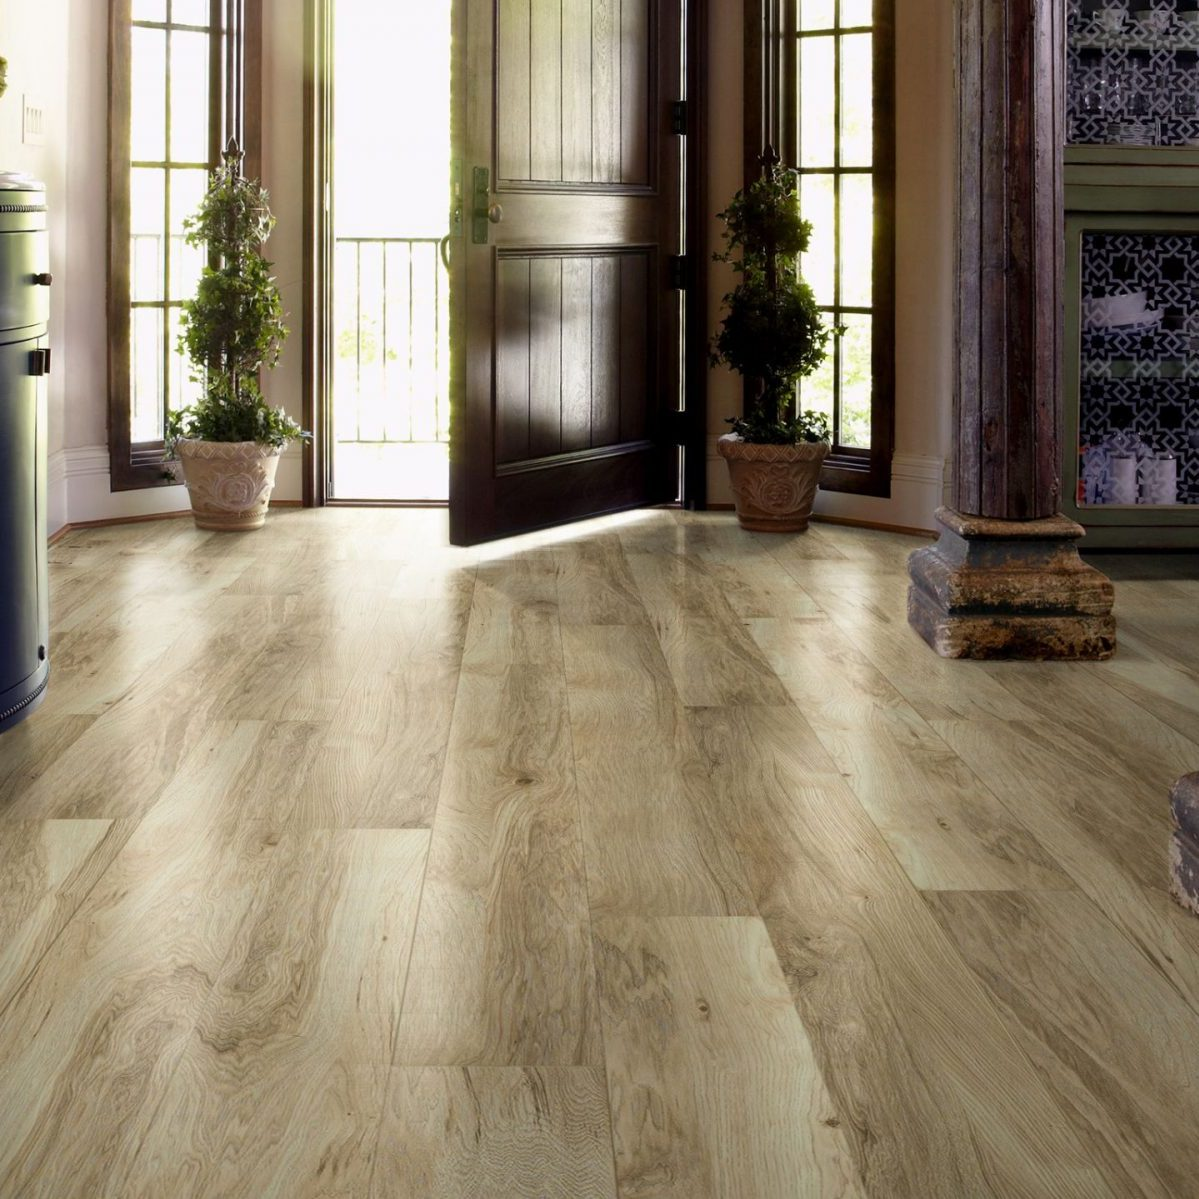 laminate choice square | Macco's Floor Covering Center